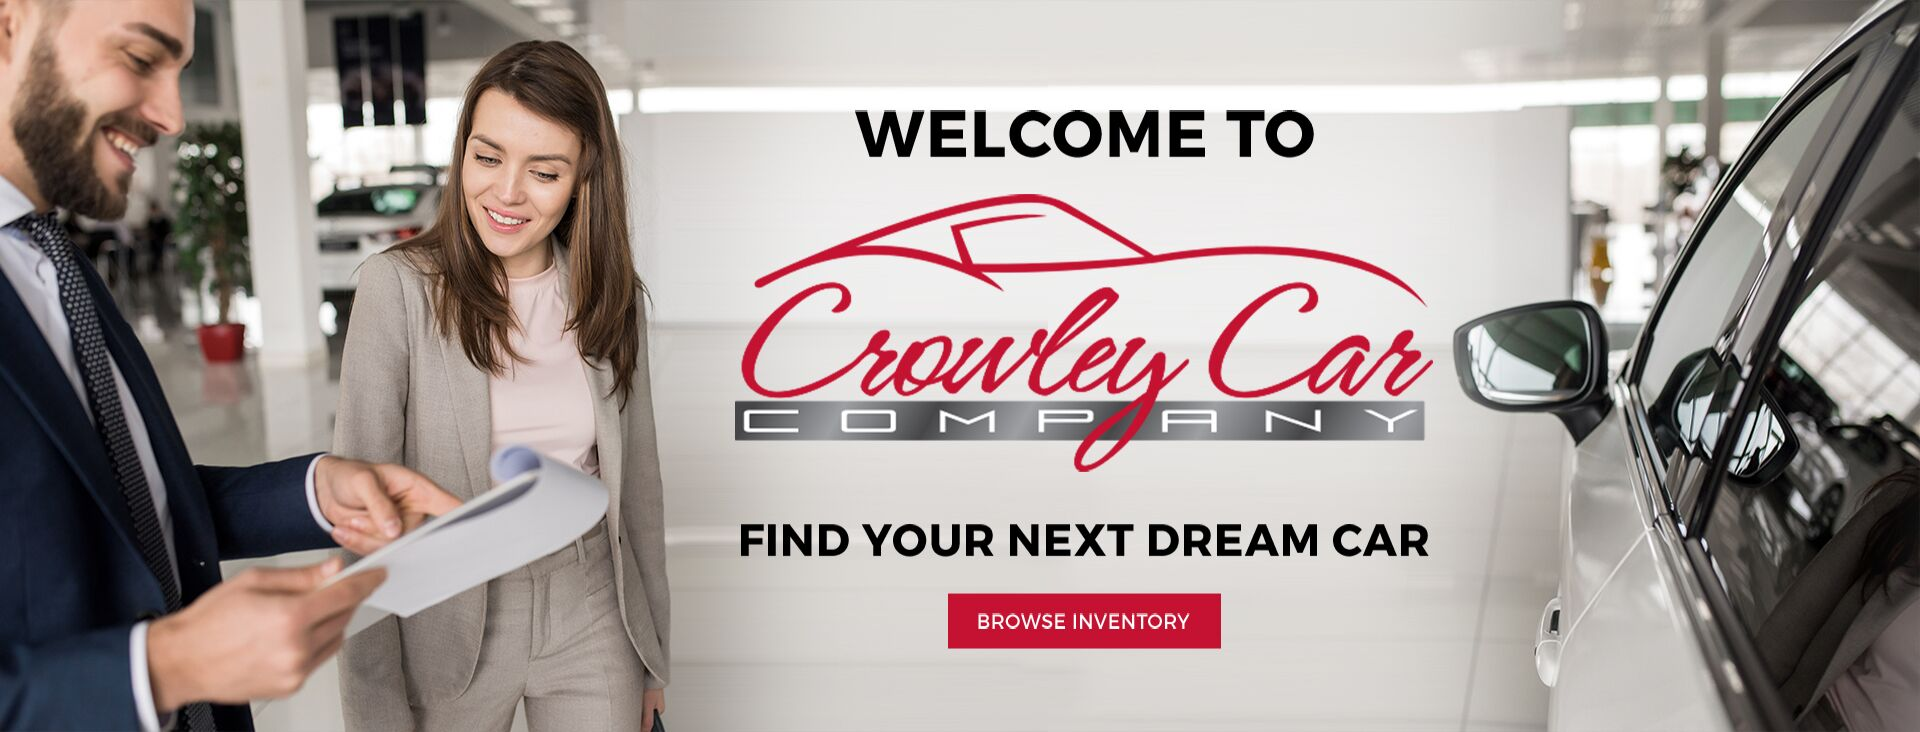 Crowley Car Company